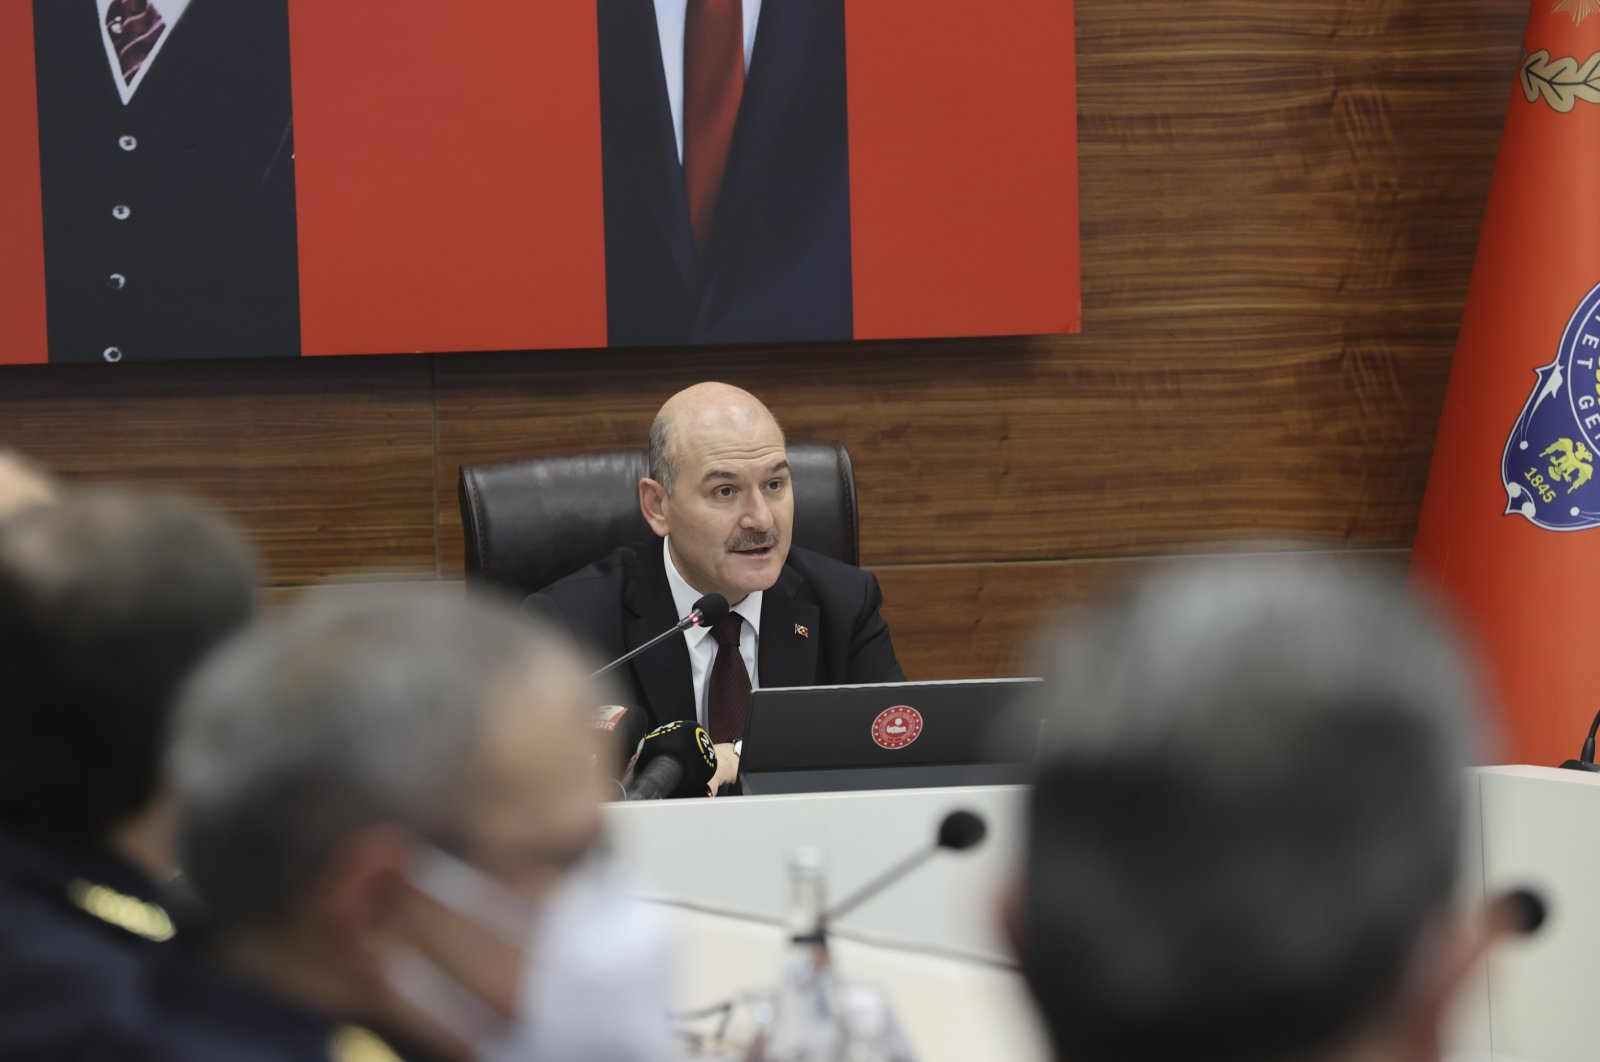 Interior Minister Süleyman Soylu speaks at a meeting with provincial police commissioners in Istanbul, Turkey, Dec. 24, 2020. (AA Photo)